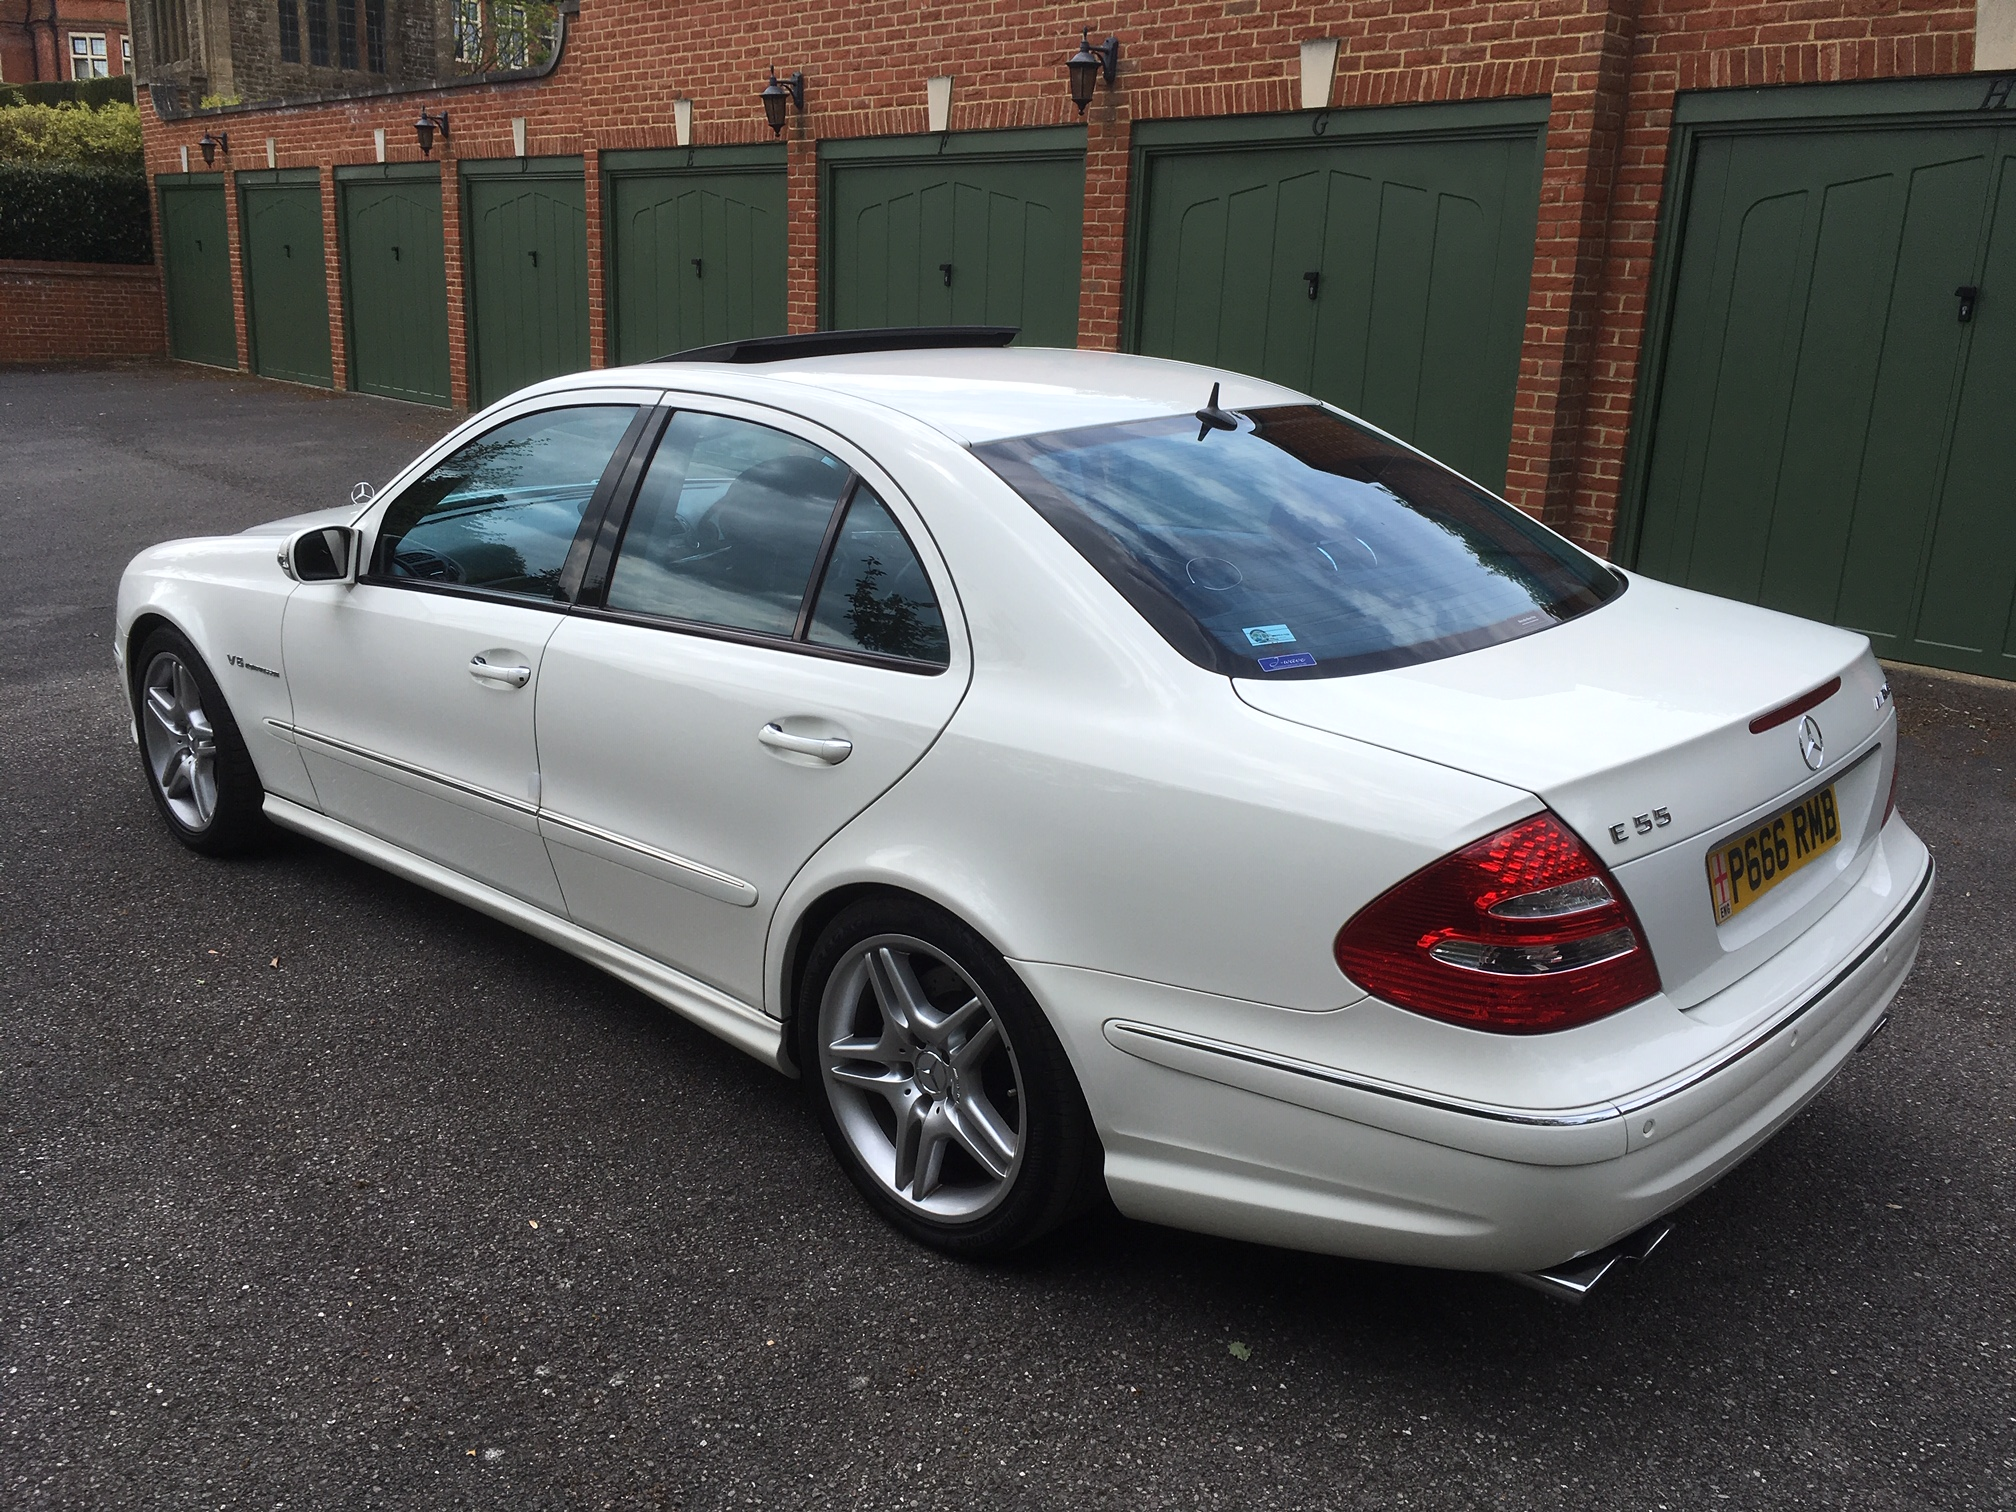 2006 Mercedes E55 AMG Supercharged, 35000 miles warranted